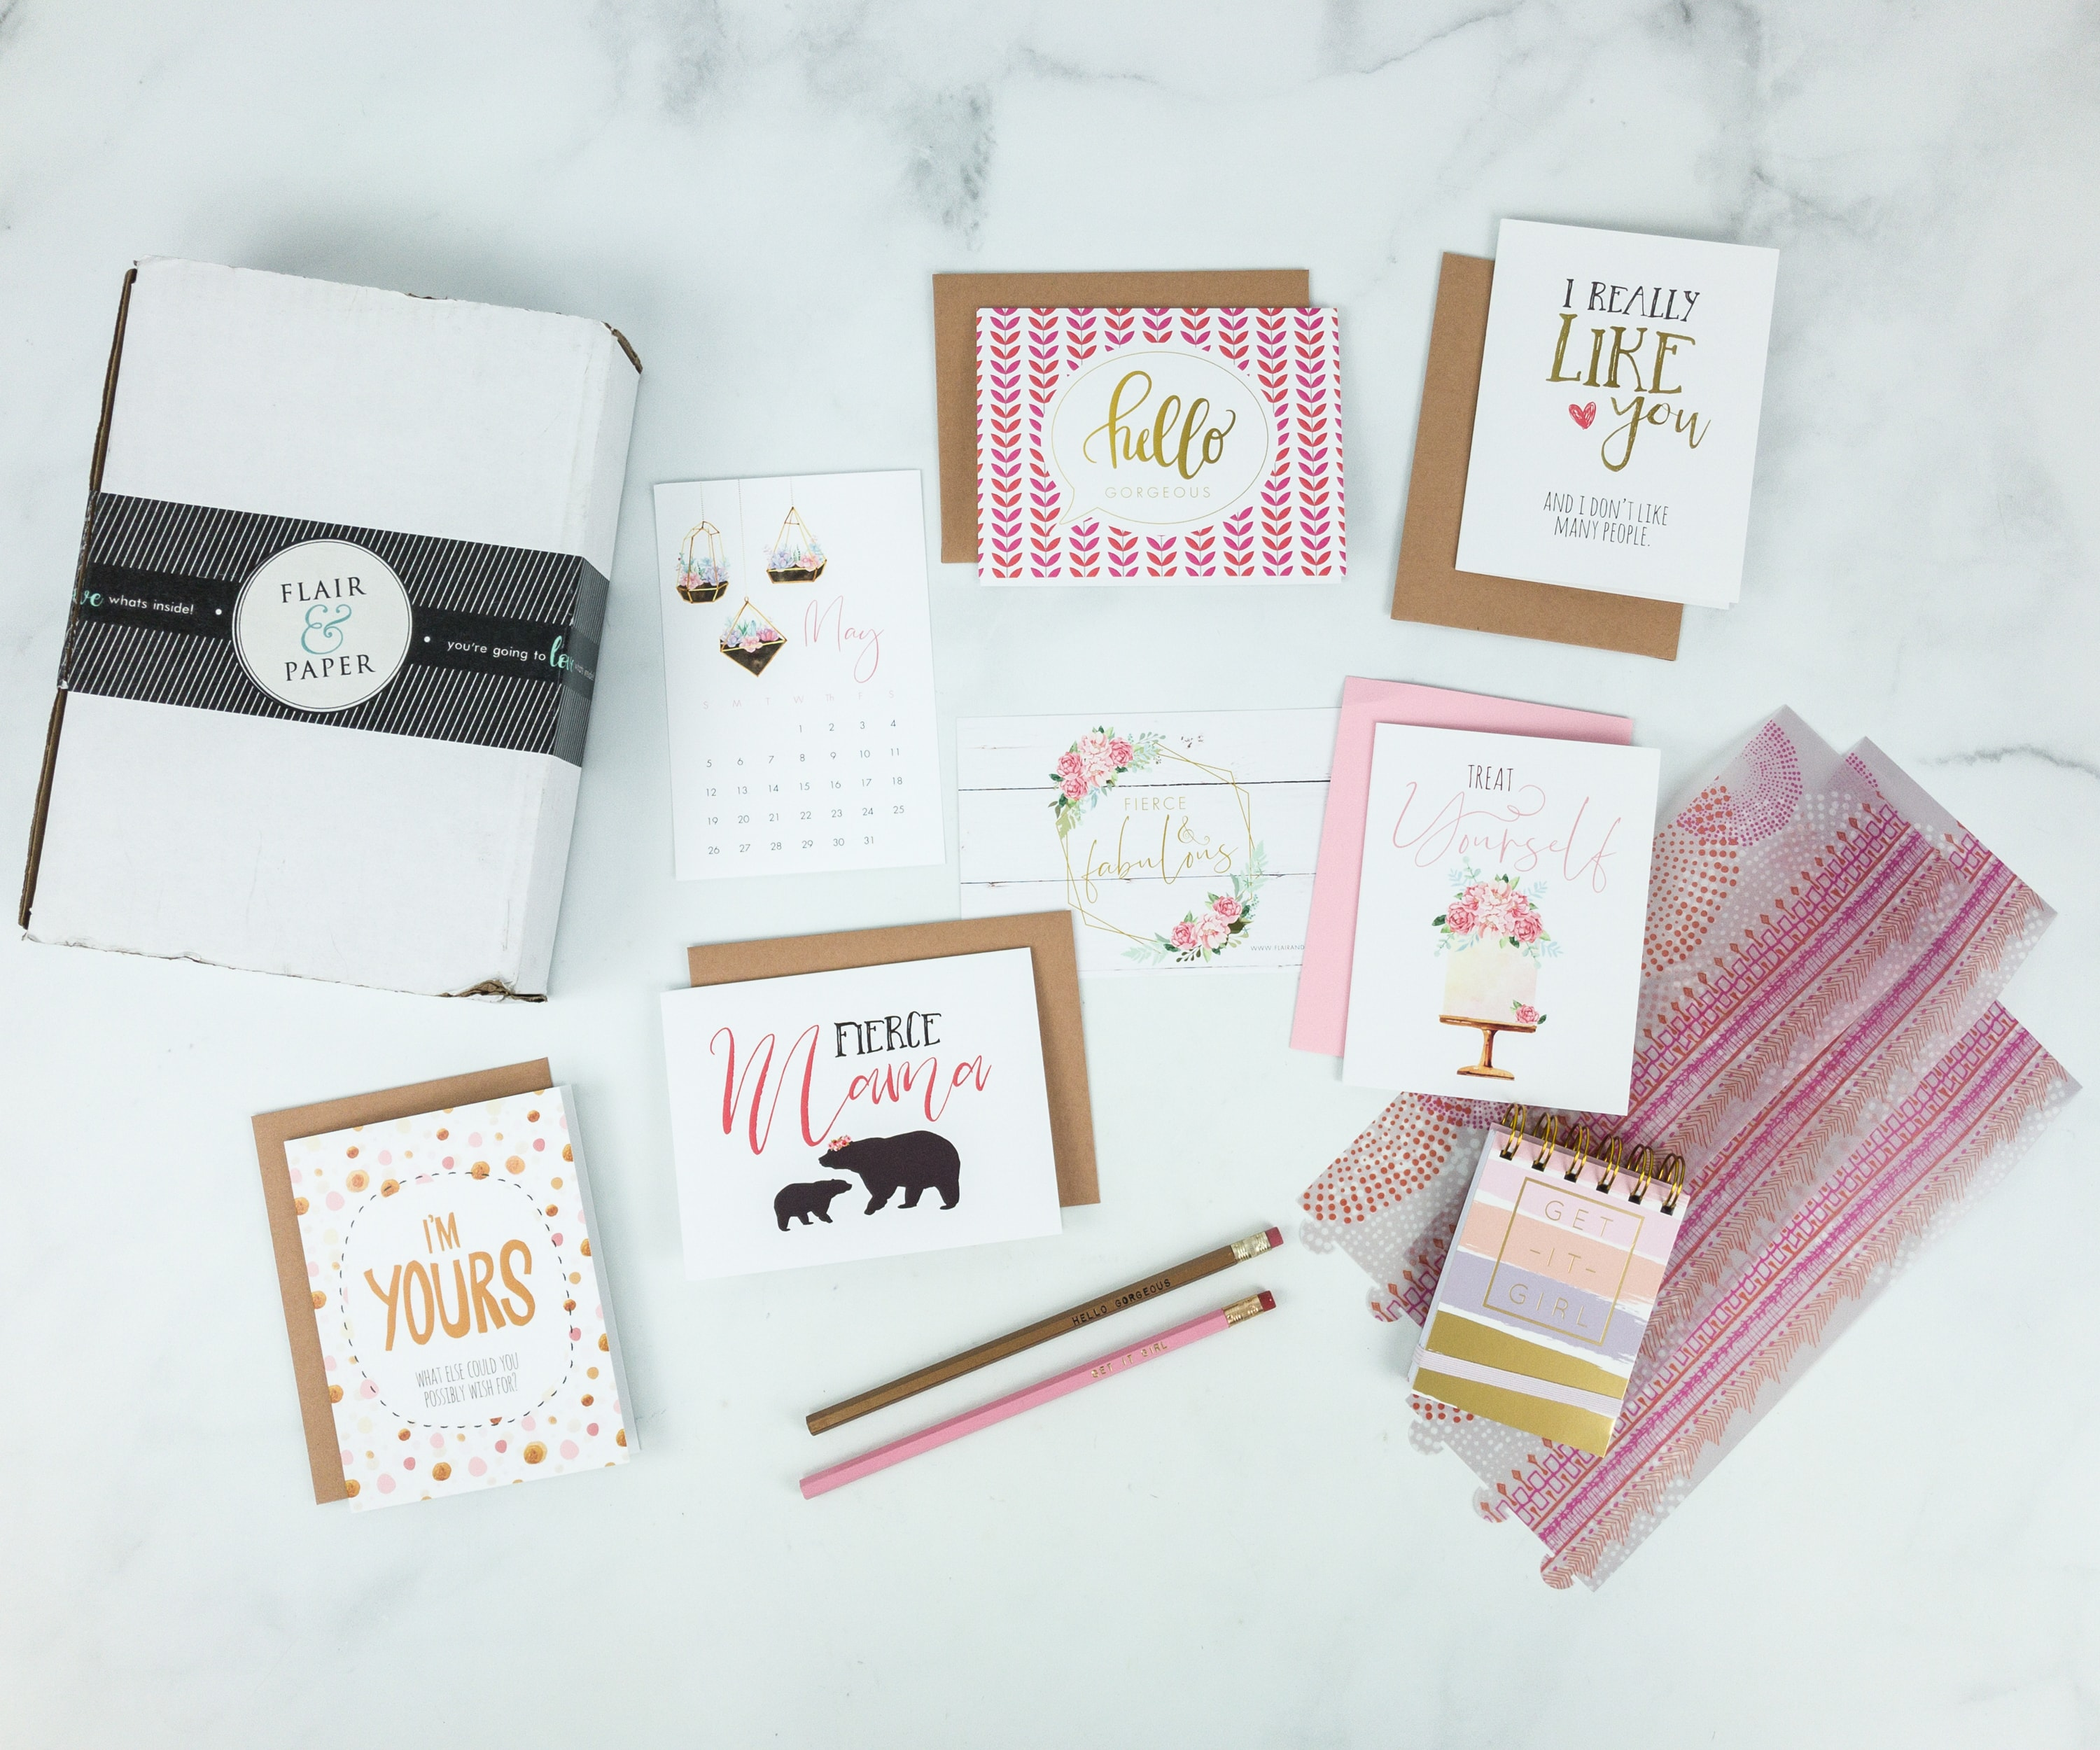 Flair and Paper May 2019 Subscription Box Review & Coupon